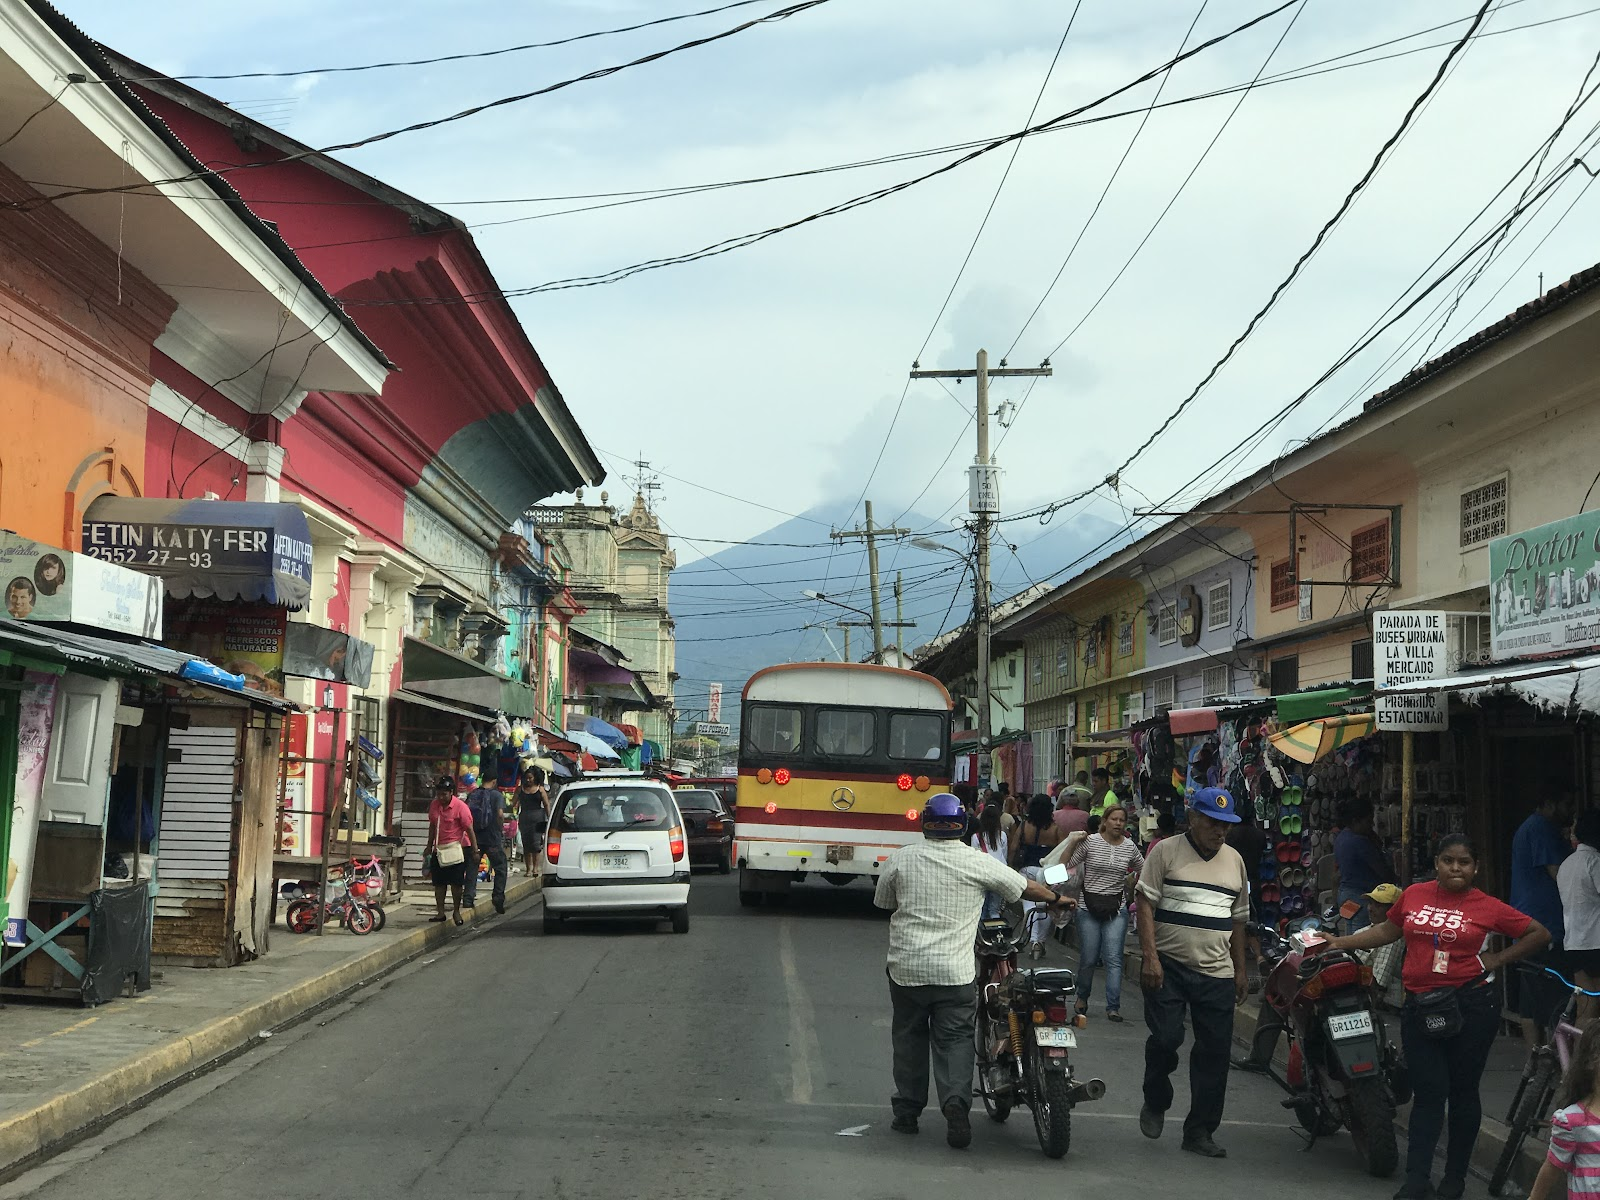 Granada Nicaragua - downtown, buses and crowded streets